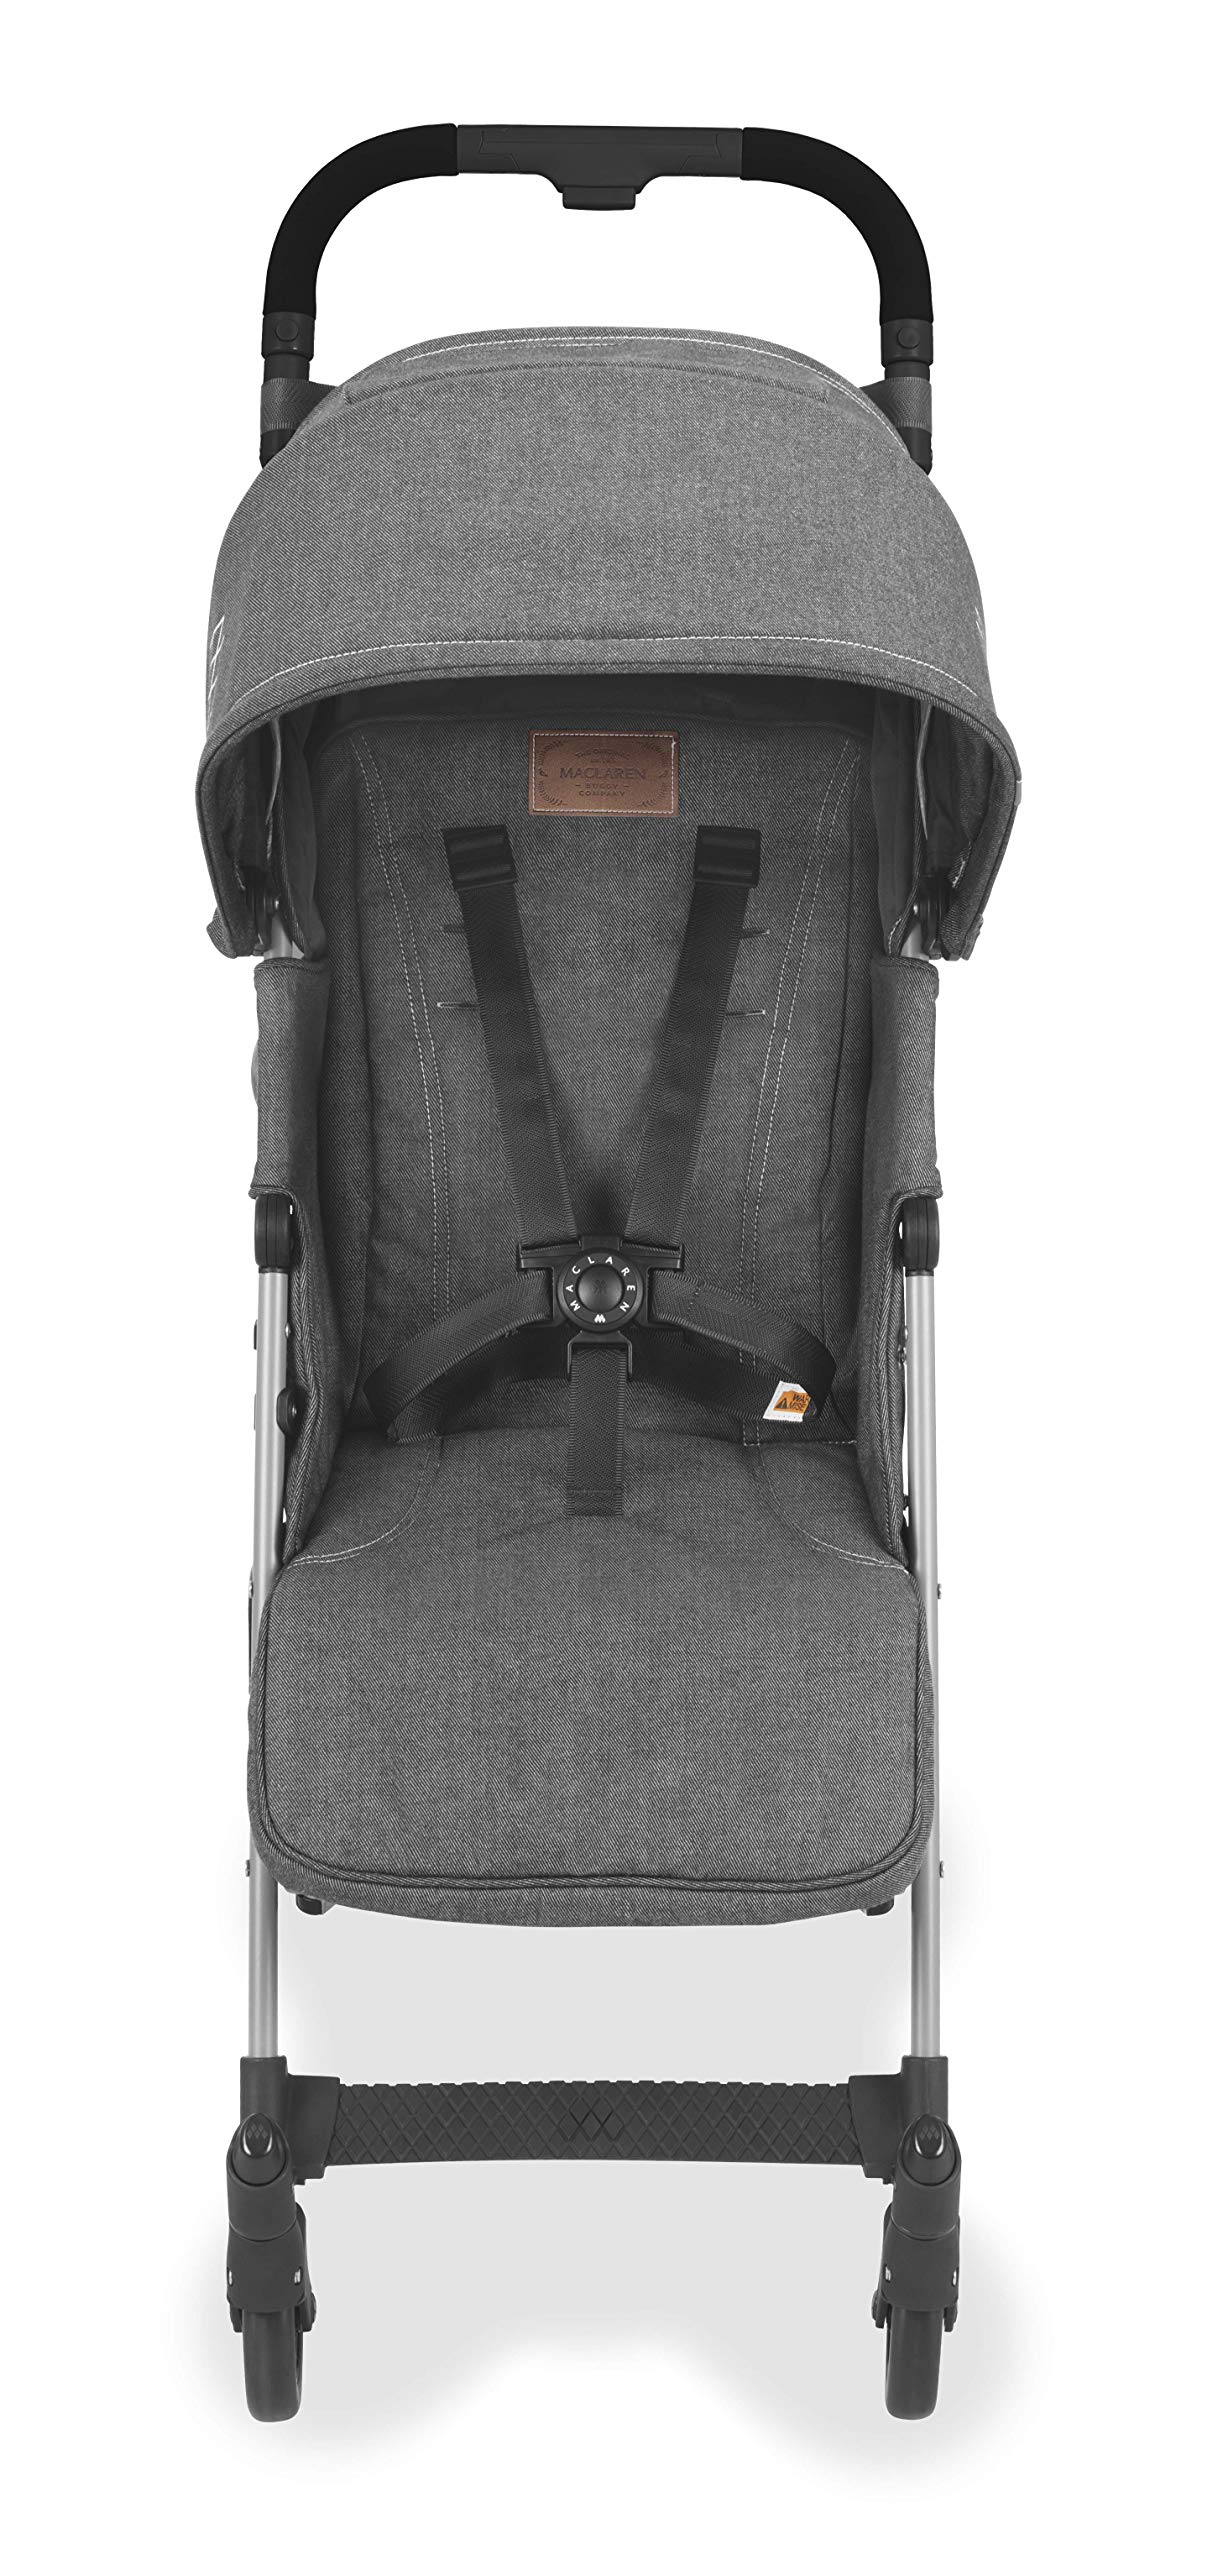 Maclaren Quest Arc Stroller- Ideal for Newborns up to 25kg with extendable UPF 50+/Waterproof Hood, Multi-Position seat and 4-Wheel Suspension. Maclaren Carrycot Compatible. Accessories in The Box Maclaren Lightweight and compact. ideal for newborns and children up to 25kg. you can do it all with one-hand- open, close, push and adjust the seat, footrest and front safety lock Comfy and perfect for travel. the quest arc's padded seat reclines into 4 positions and converts into a new-born safety system. coupled with ultra light flat-free eva tires and all wheel suspension Smart product for active parents. compatible with the maclaren carrycot. all maclaren strollers have waterproof/ upf 50+ hoods to protect from the elements and machine washable seats to keep tidy 9